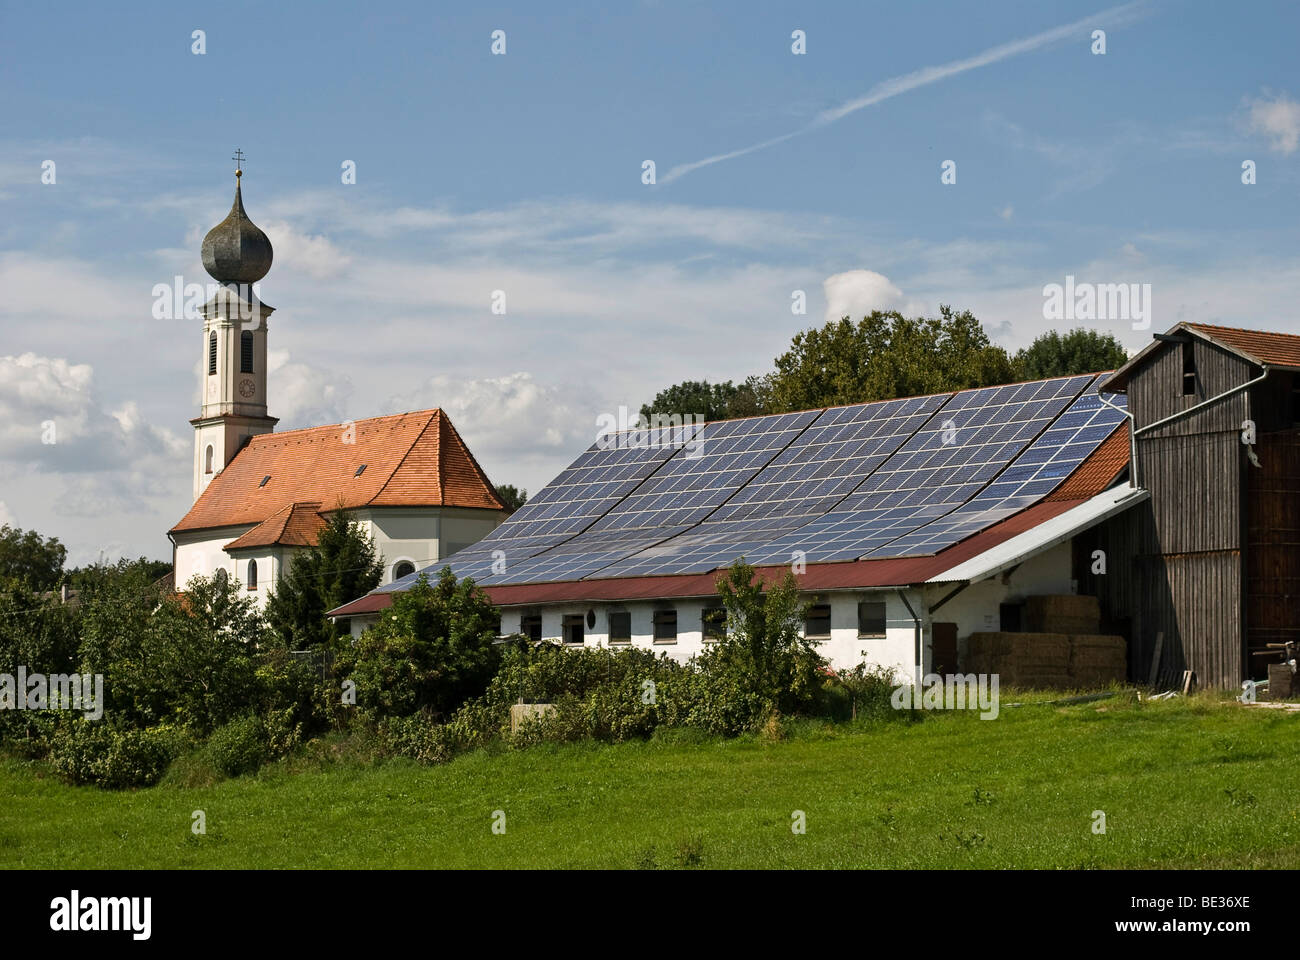 Solar system on an agricultural building in Bavaria, Germany, Europe - Stock Image